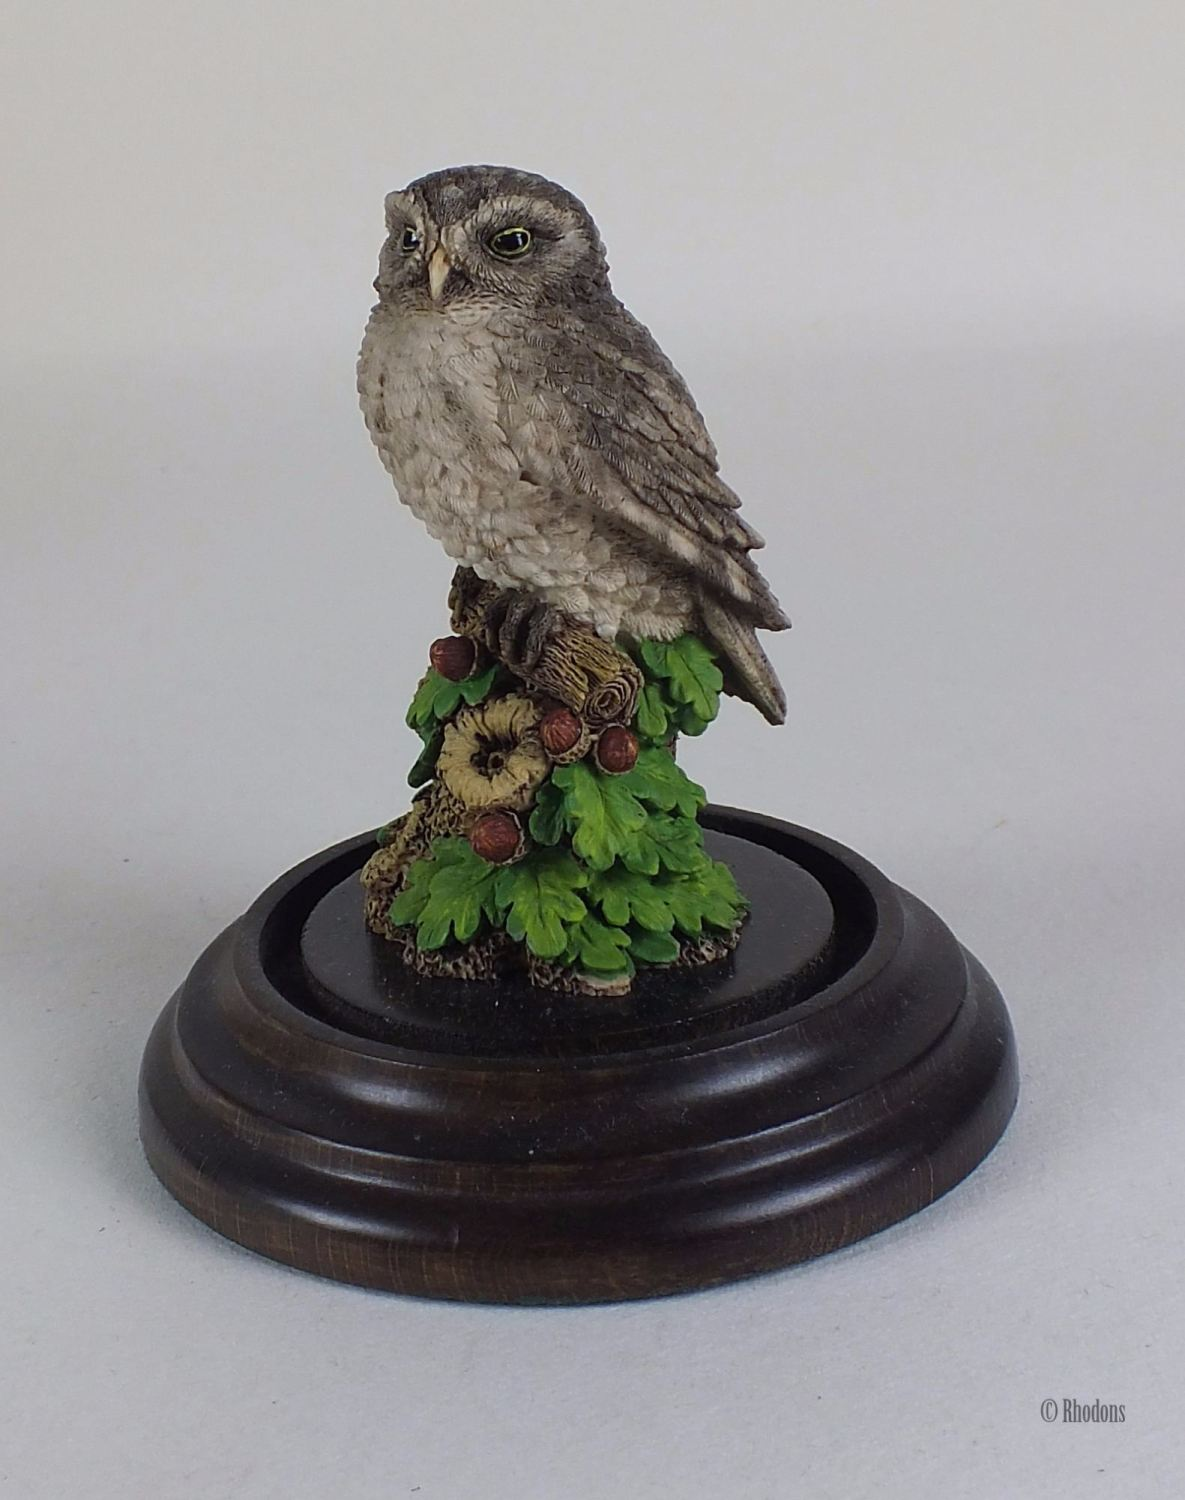 Owl Figurine By Country Artists Stephen Langford With